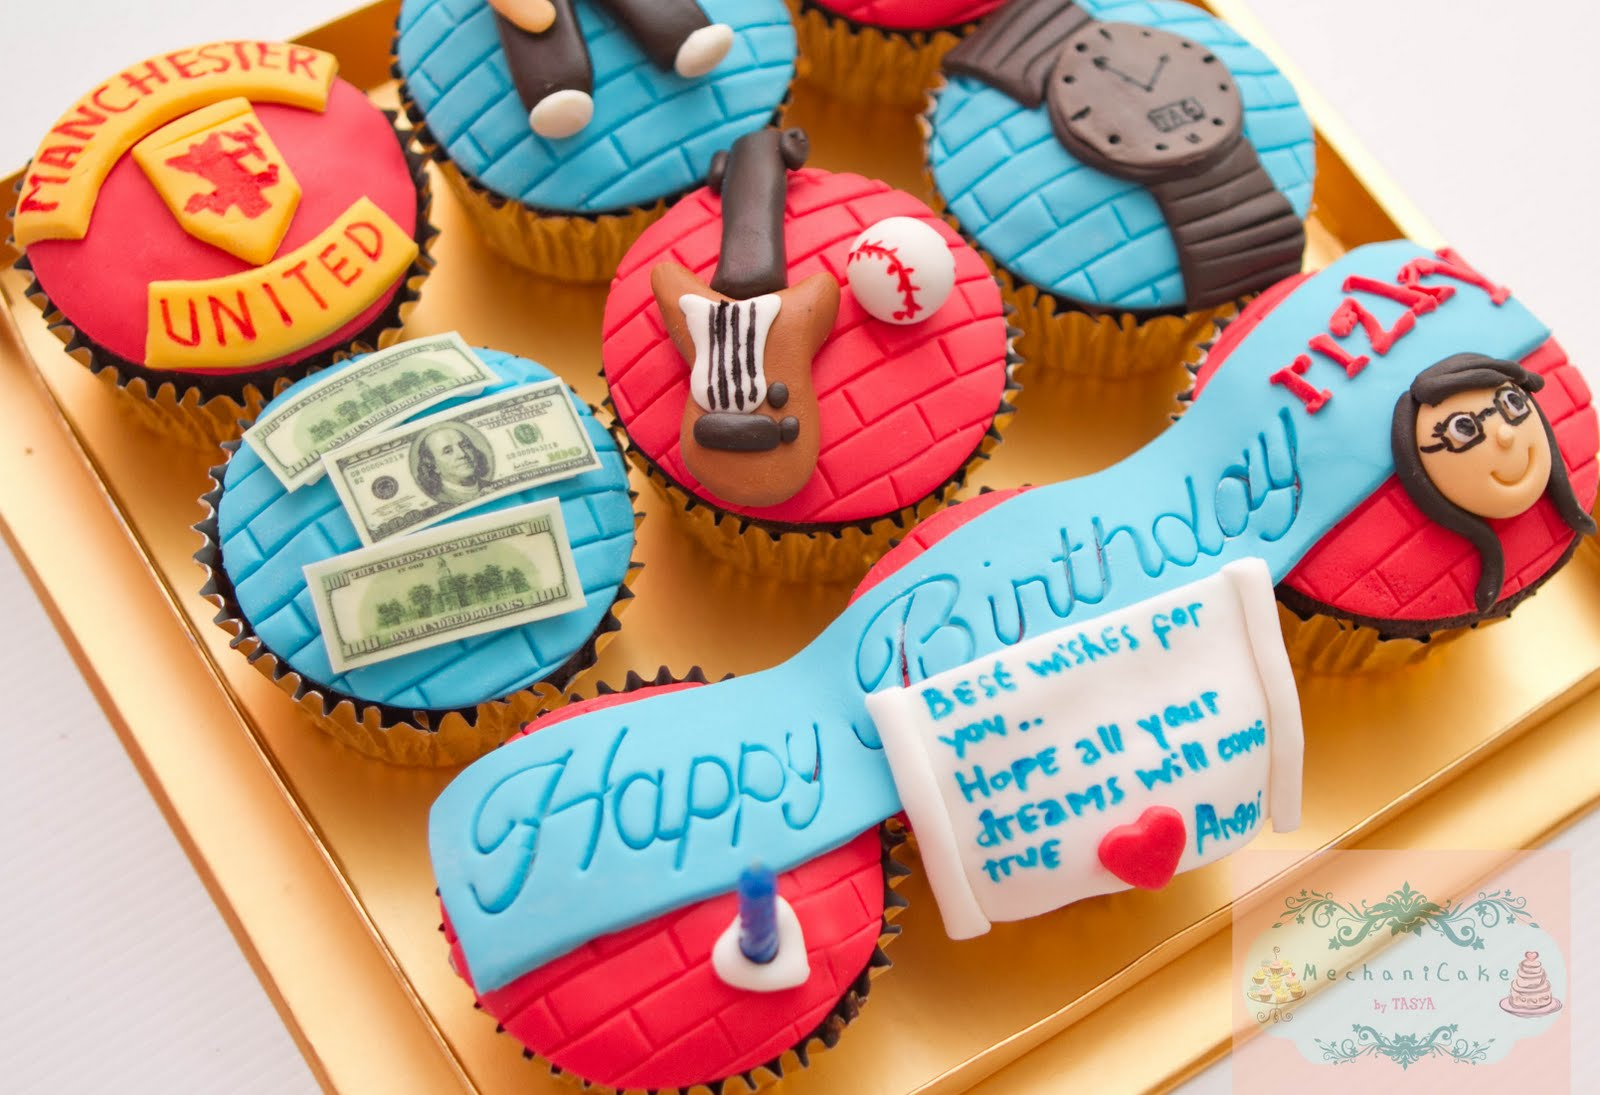 Happy Birthday Wishes Artinya ~ Cupcake artinya ~ kustura for .